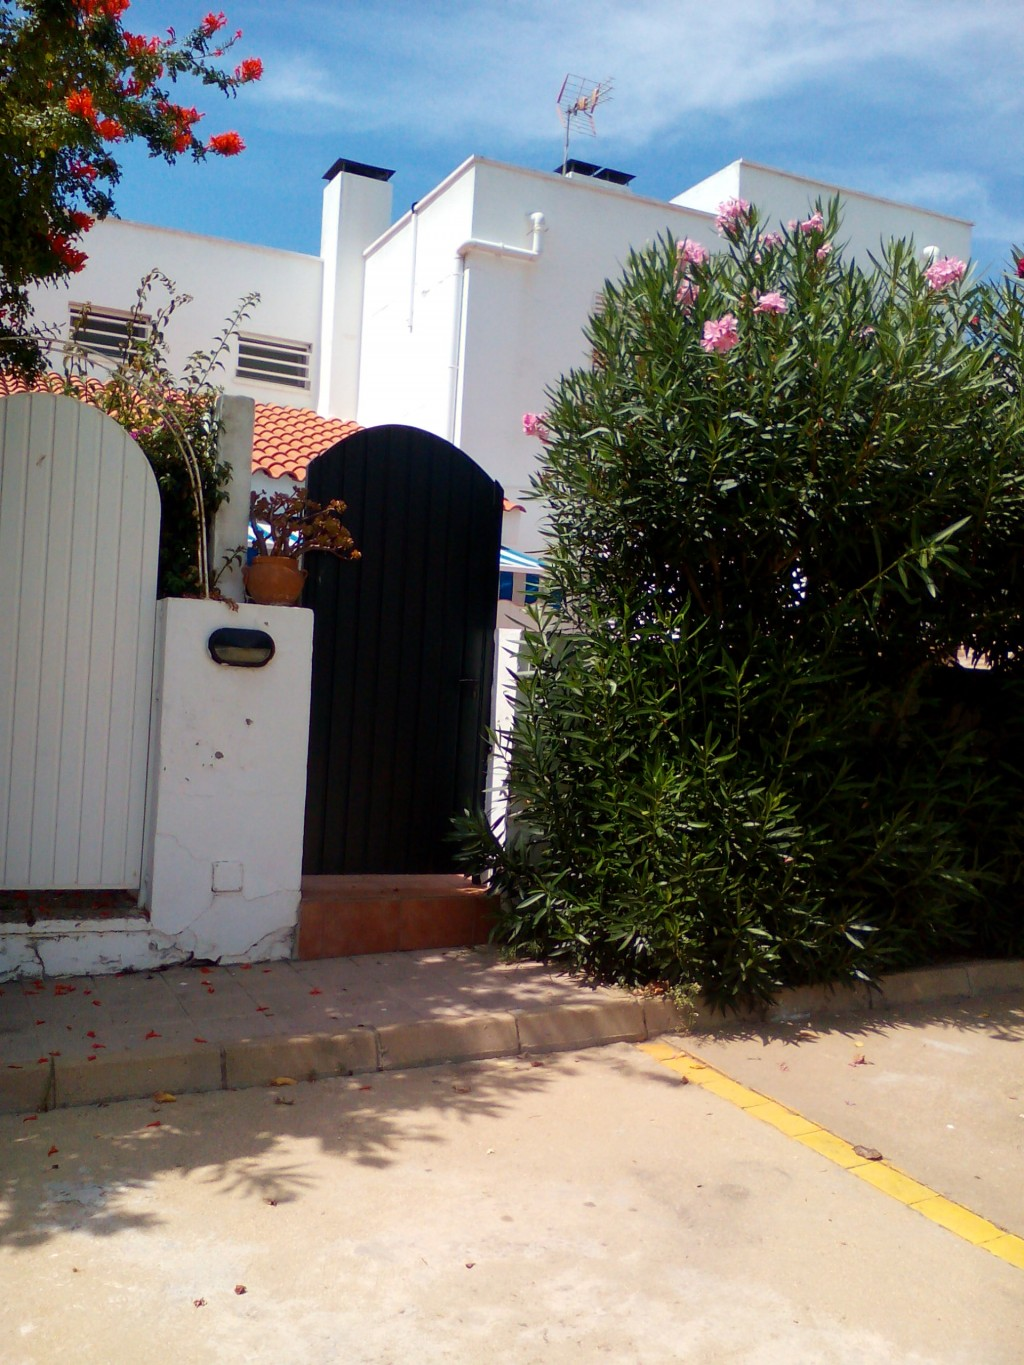 3 Bedroom Townhouse for Sale in Costa de la Luz, Andalusia / El Rompido